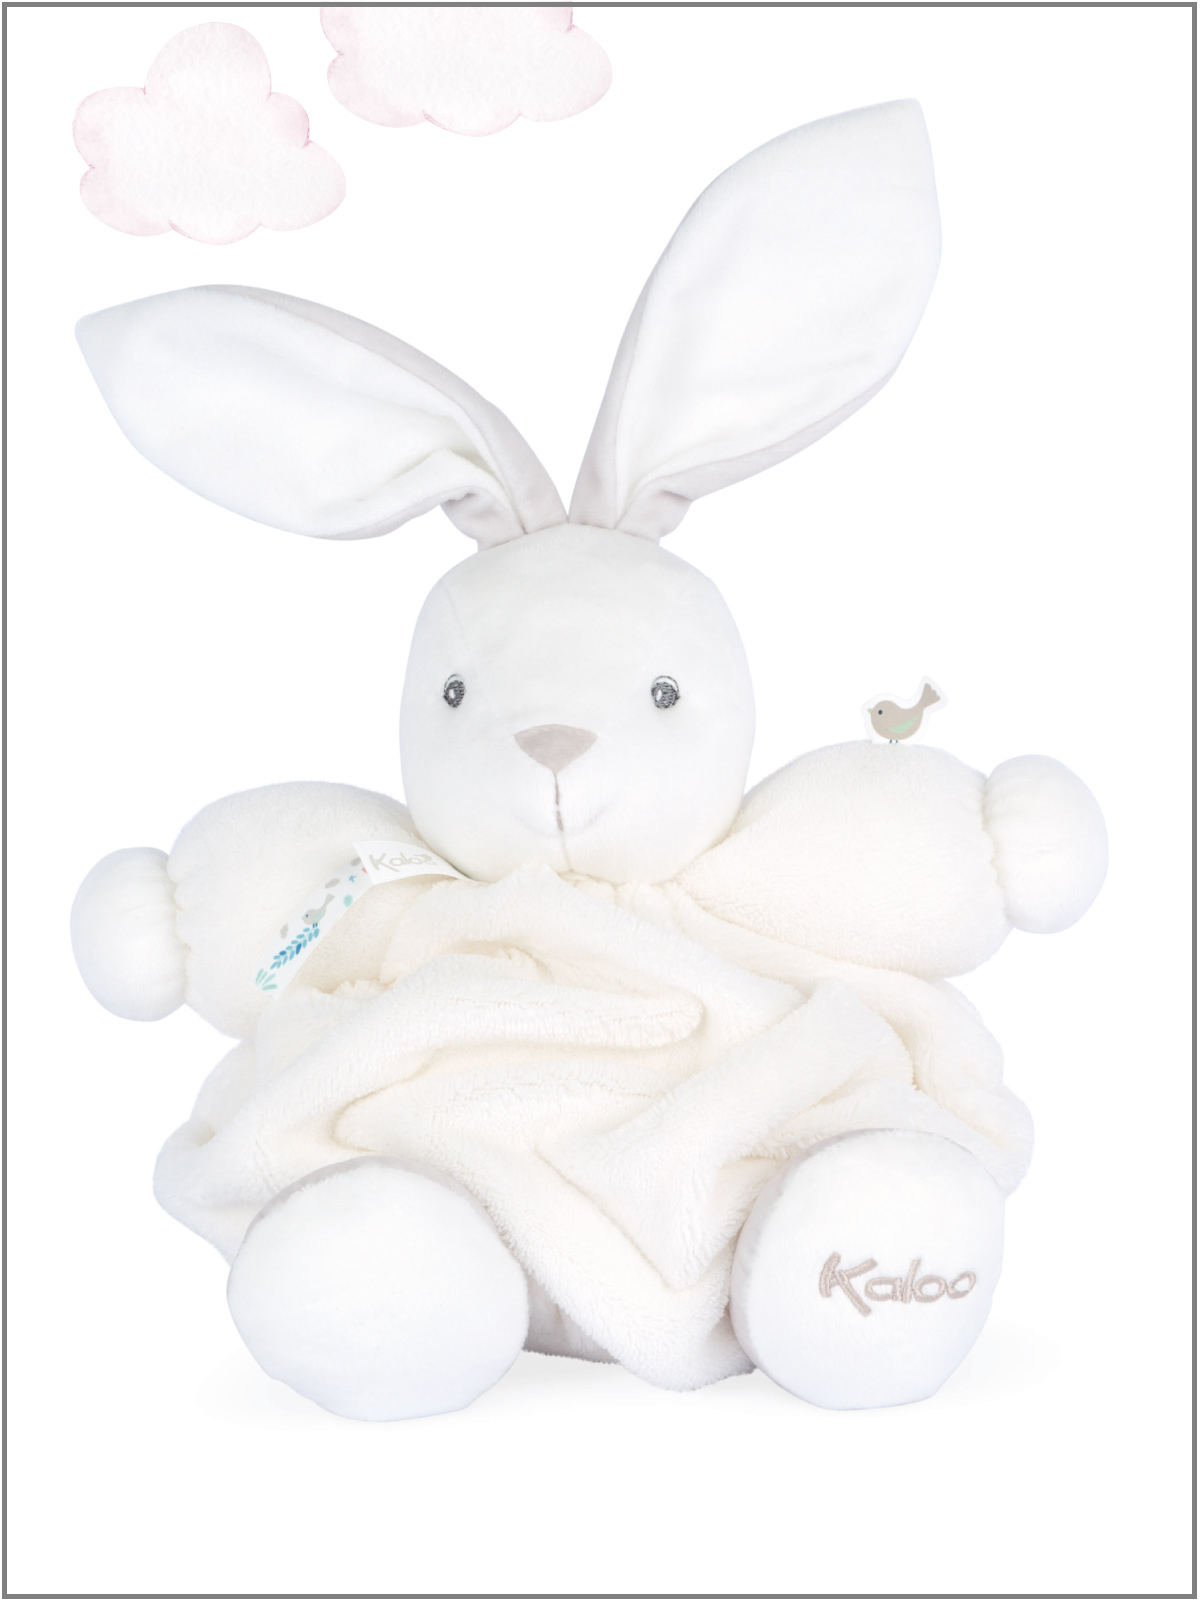 frederickandsophie-kids-toys-kaloo-france-soft-plush-rabbit-baby